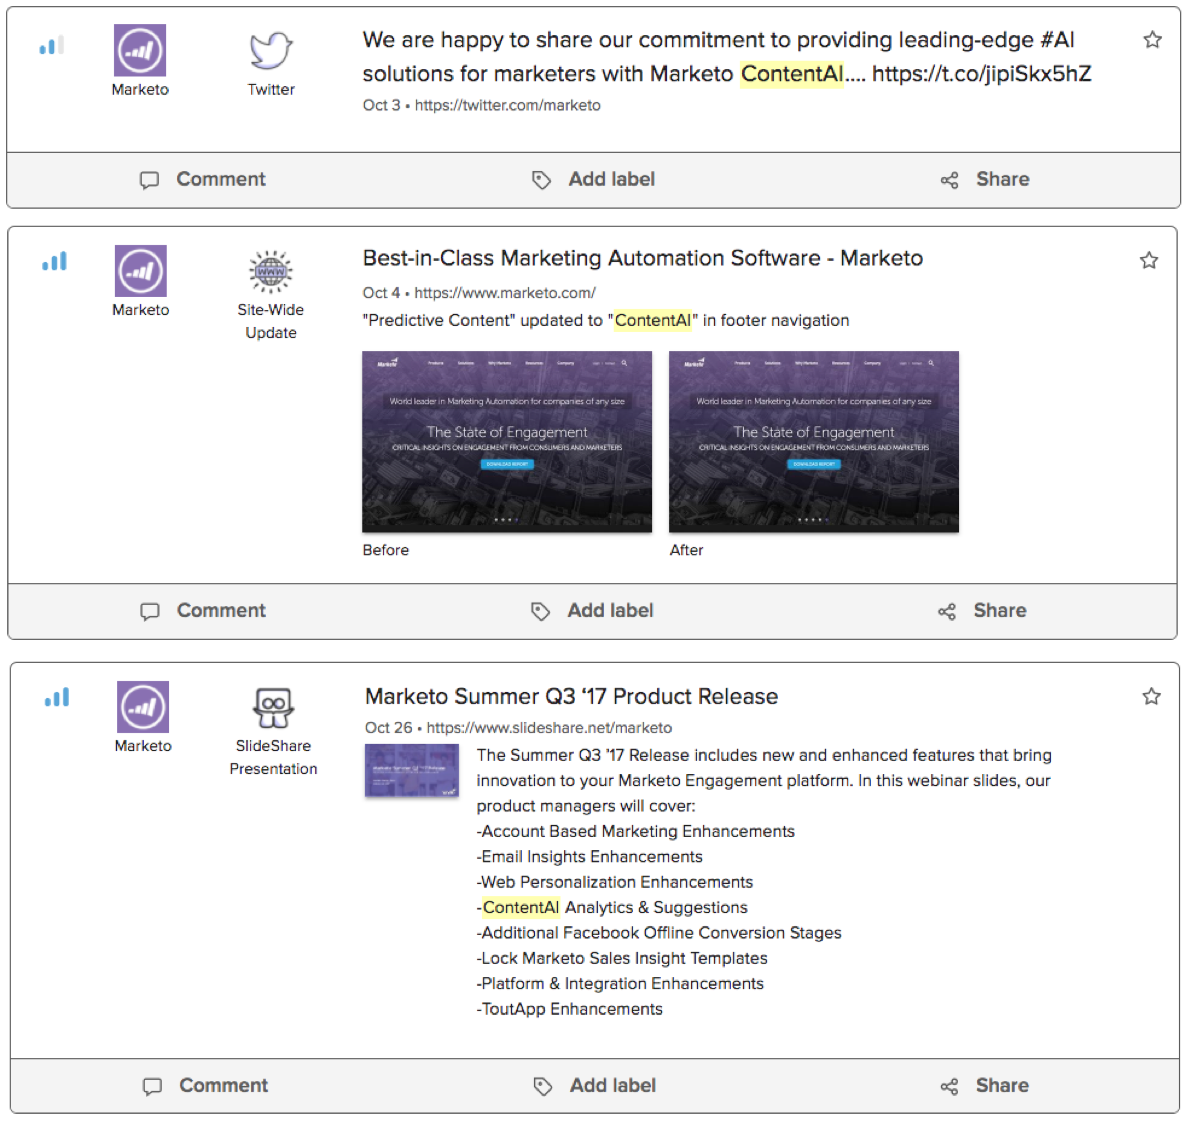 marketo-insight-group-contentai.png